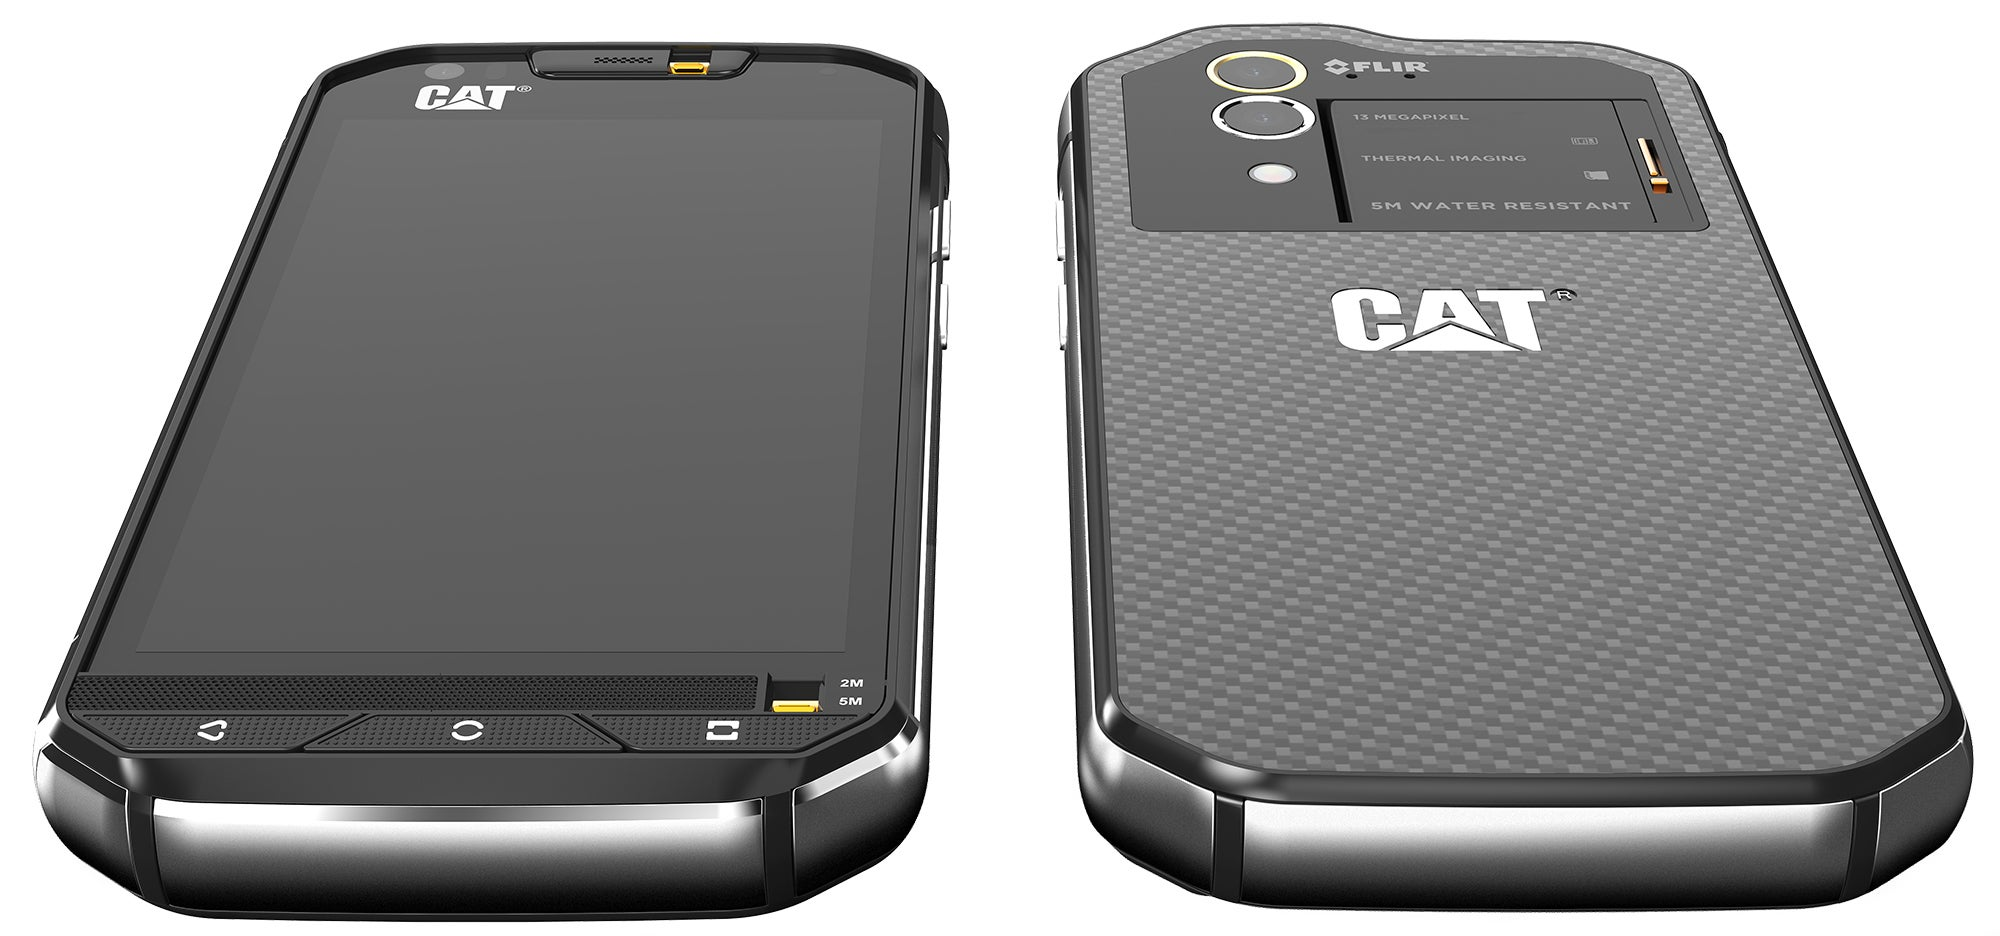 Caterpillar's New S60 Is the First Smartphone With FLIR Thermal Imaging Built Right In